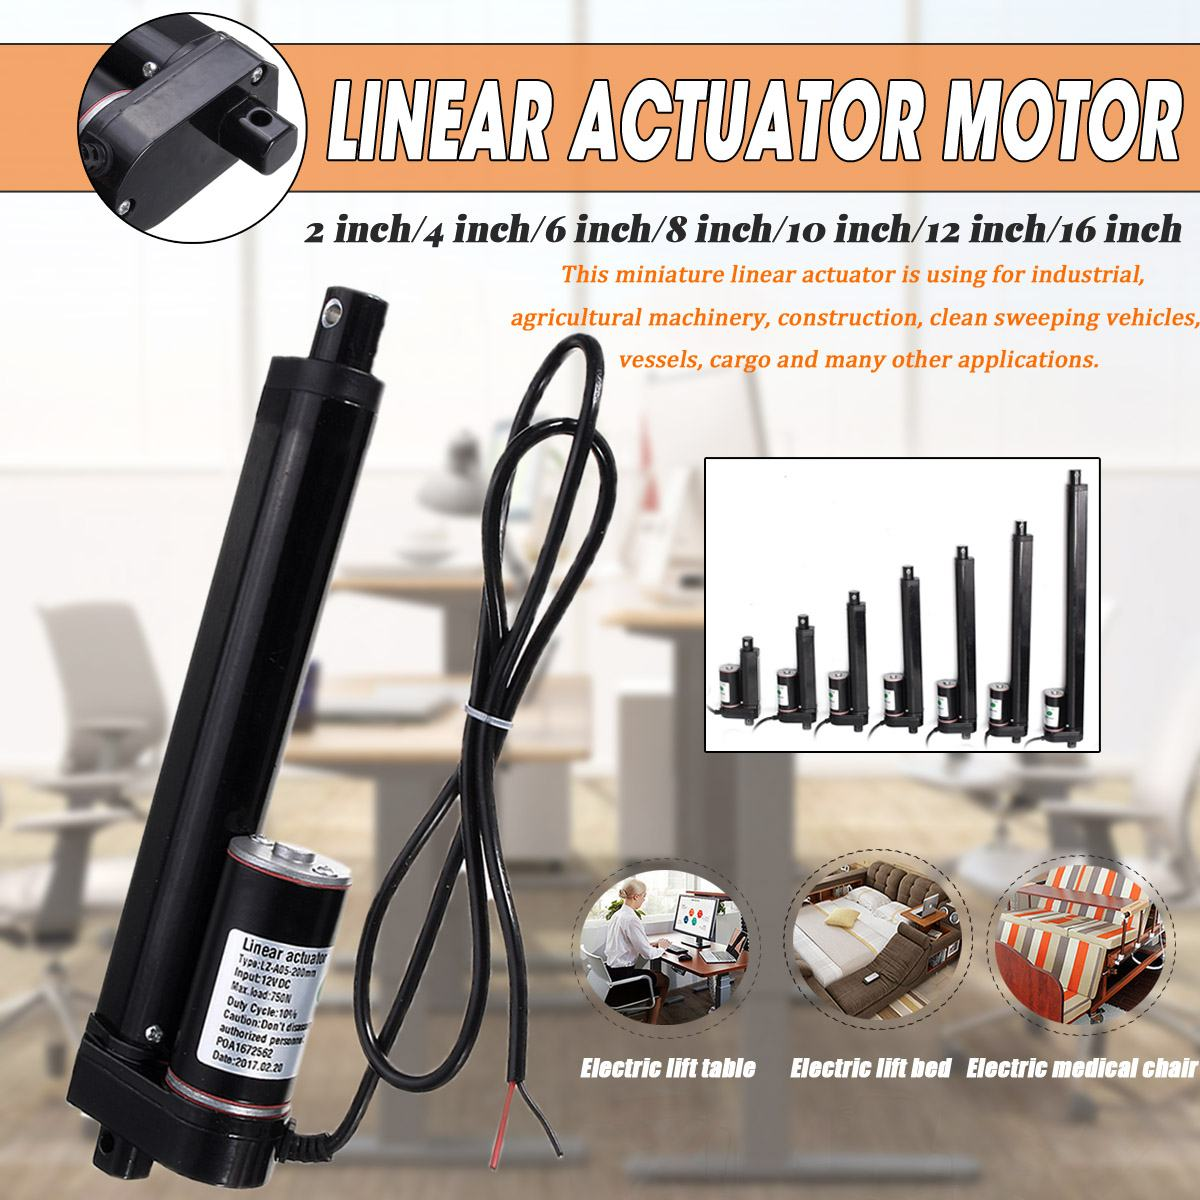 12V Heavy  750N 2-16 inch 50-400MM Stroke Electric Linear Actuator Motor Lifting Tools DC Motor Excellent Workmanship12V Heavy  750N 2-16 inch 50-400MM Stroke Electric Linear Actuator Motor Lifting Tools DC Motor Excellent Workmanship